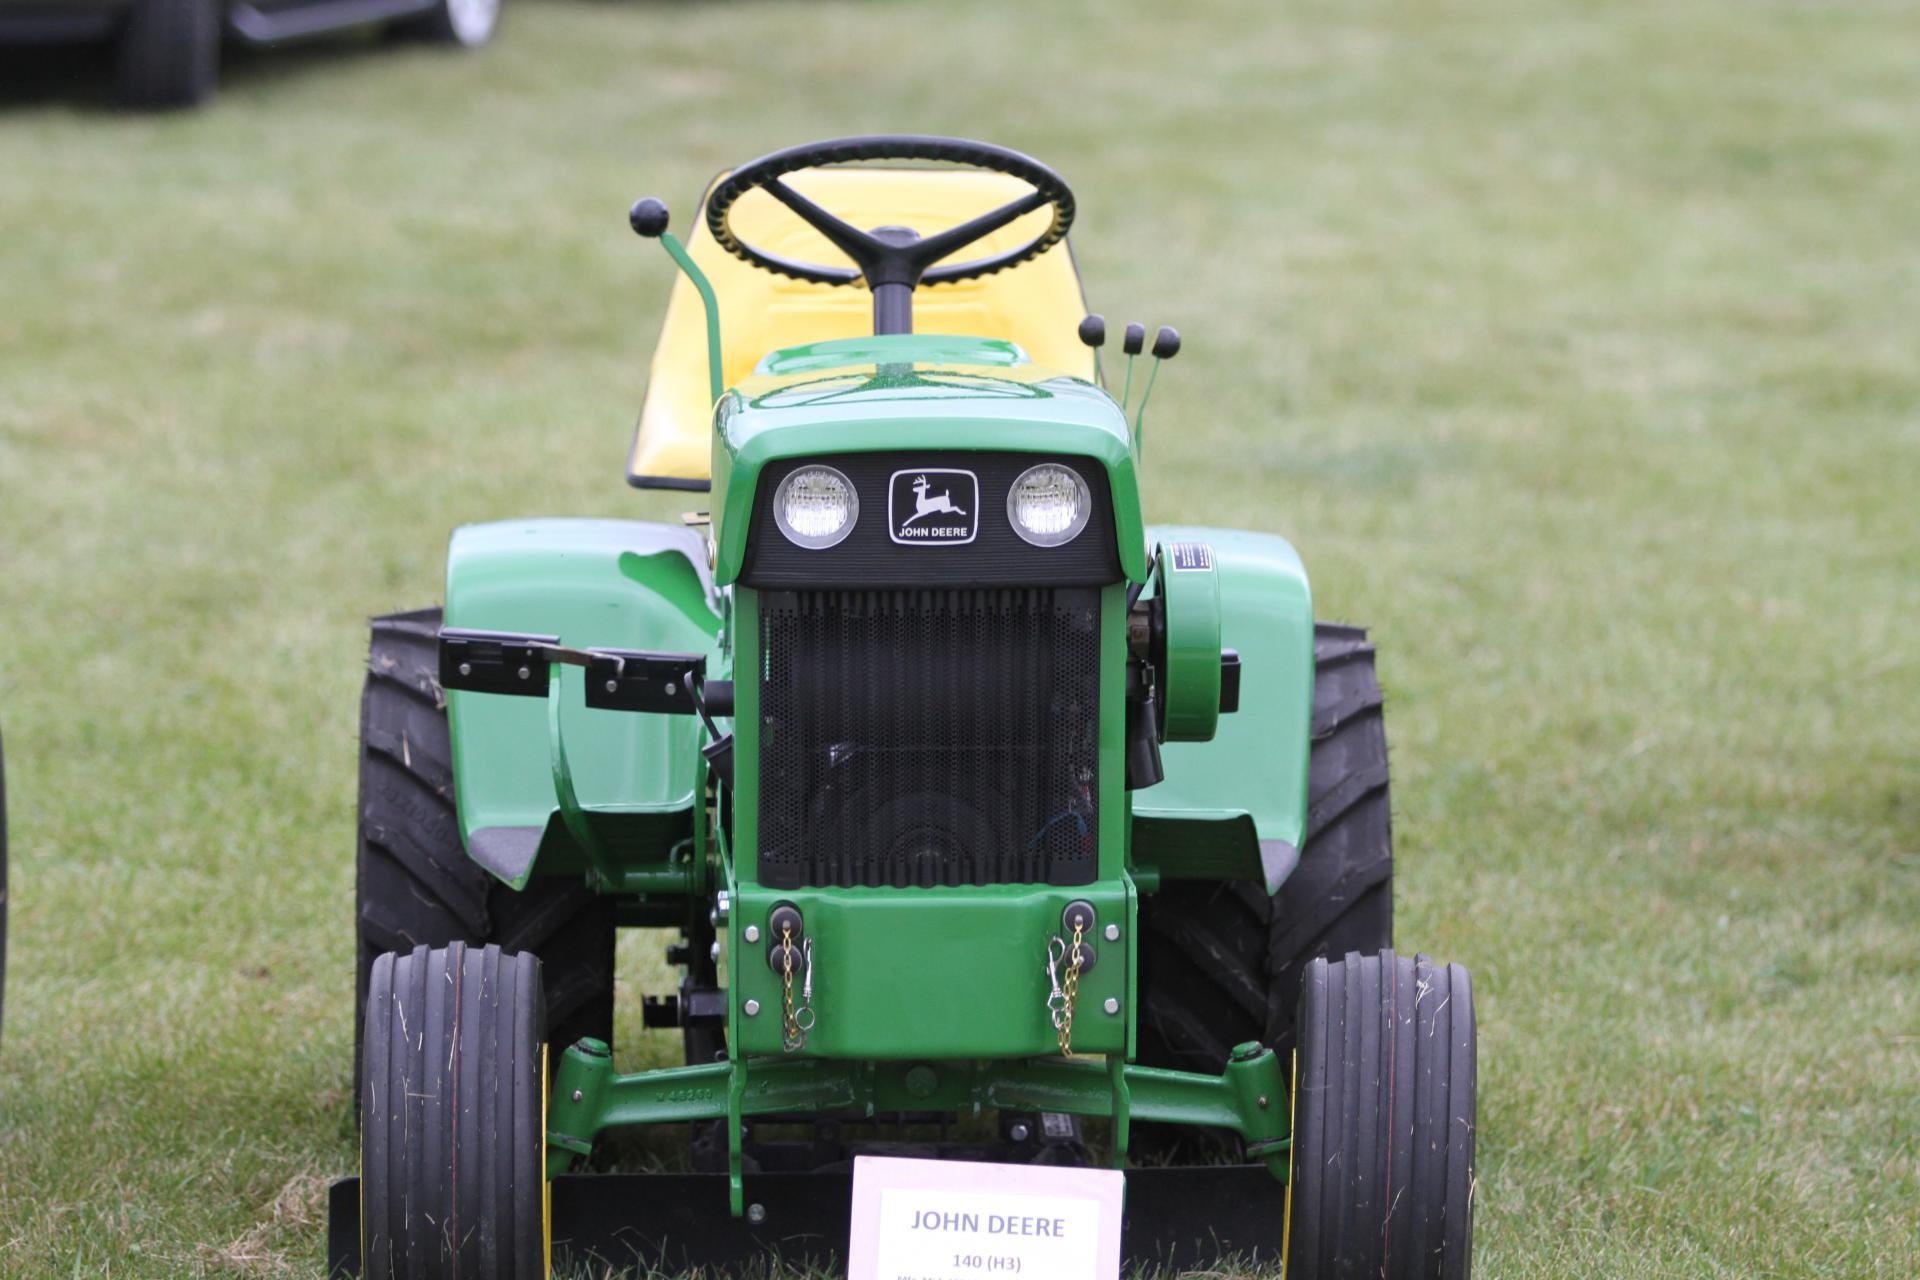 John Deere 140 H3 Wiring Diagram Lawn And Garden Tractor Photo Credit Larry Douma Leader Photography 1920x1280